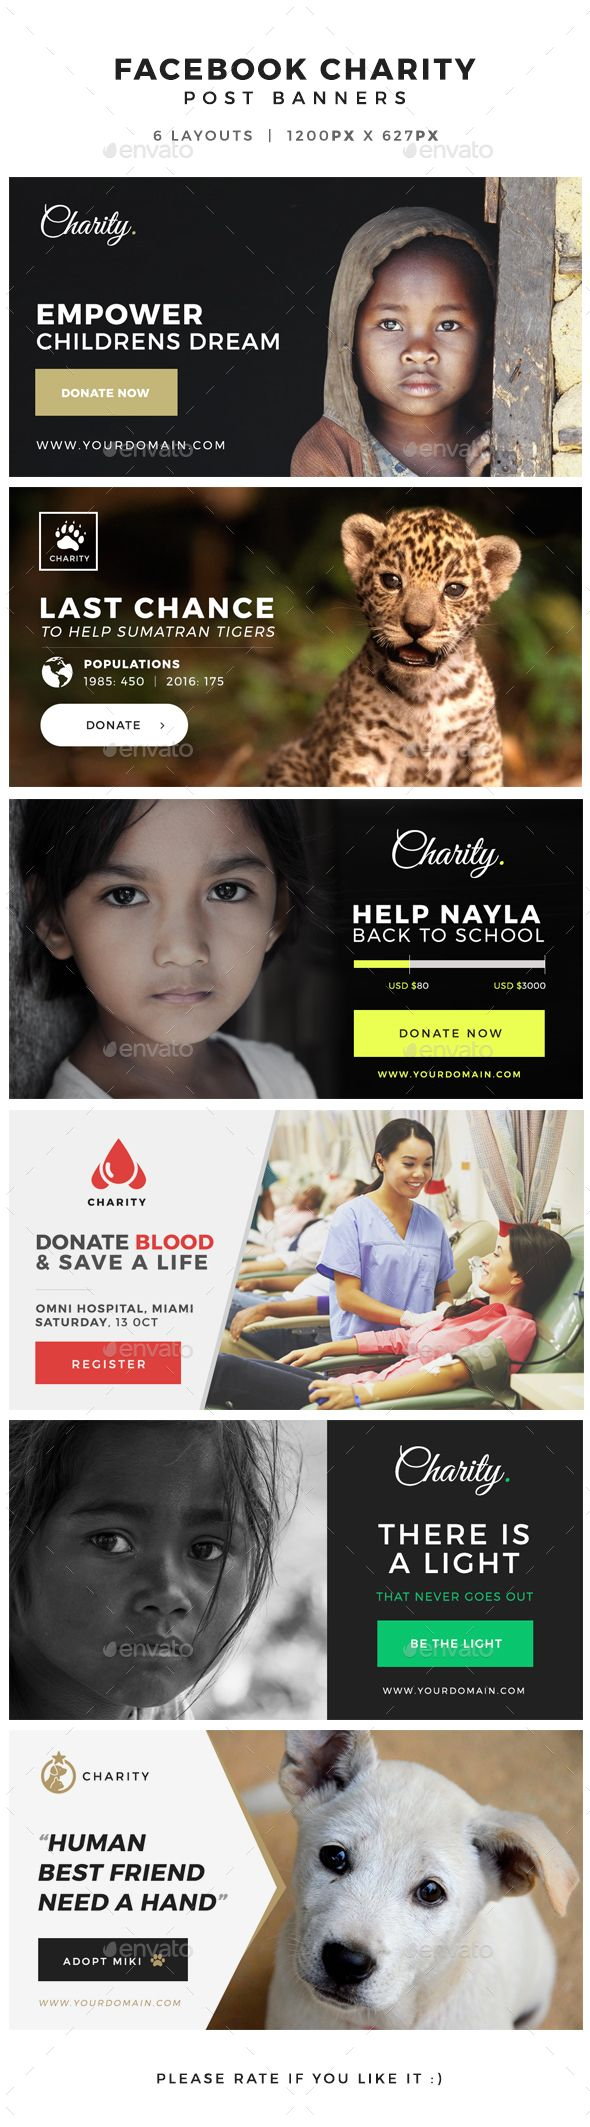 Facebook Charity Post Banners